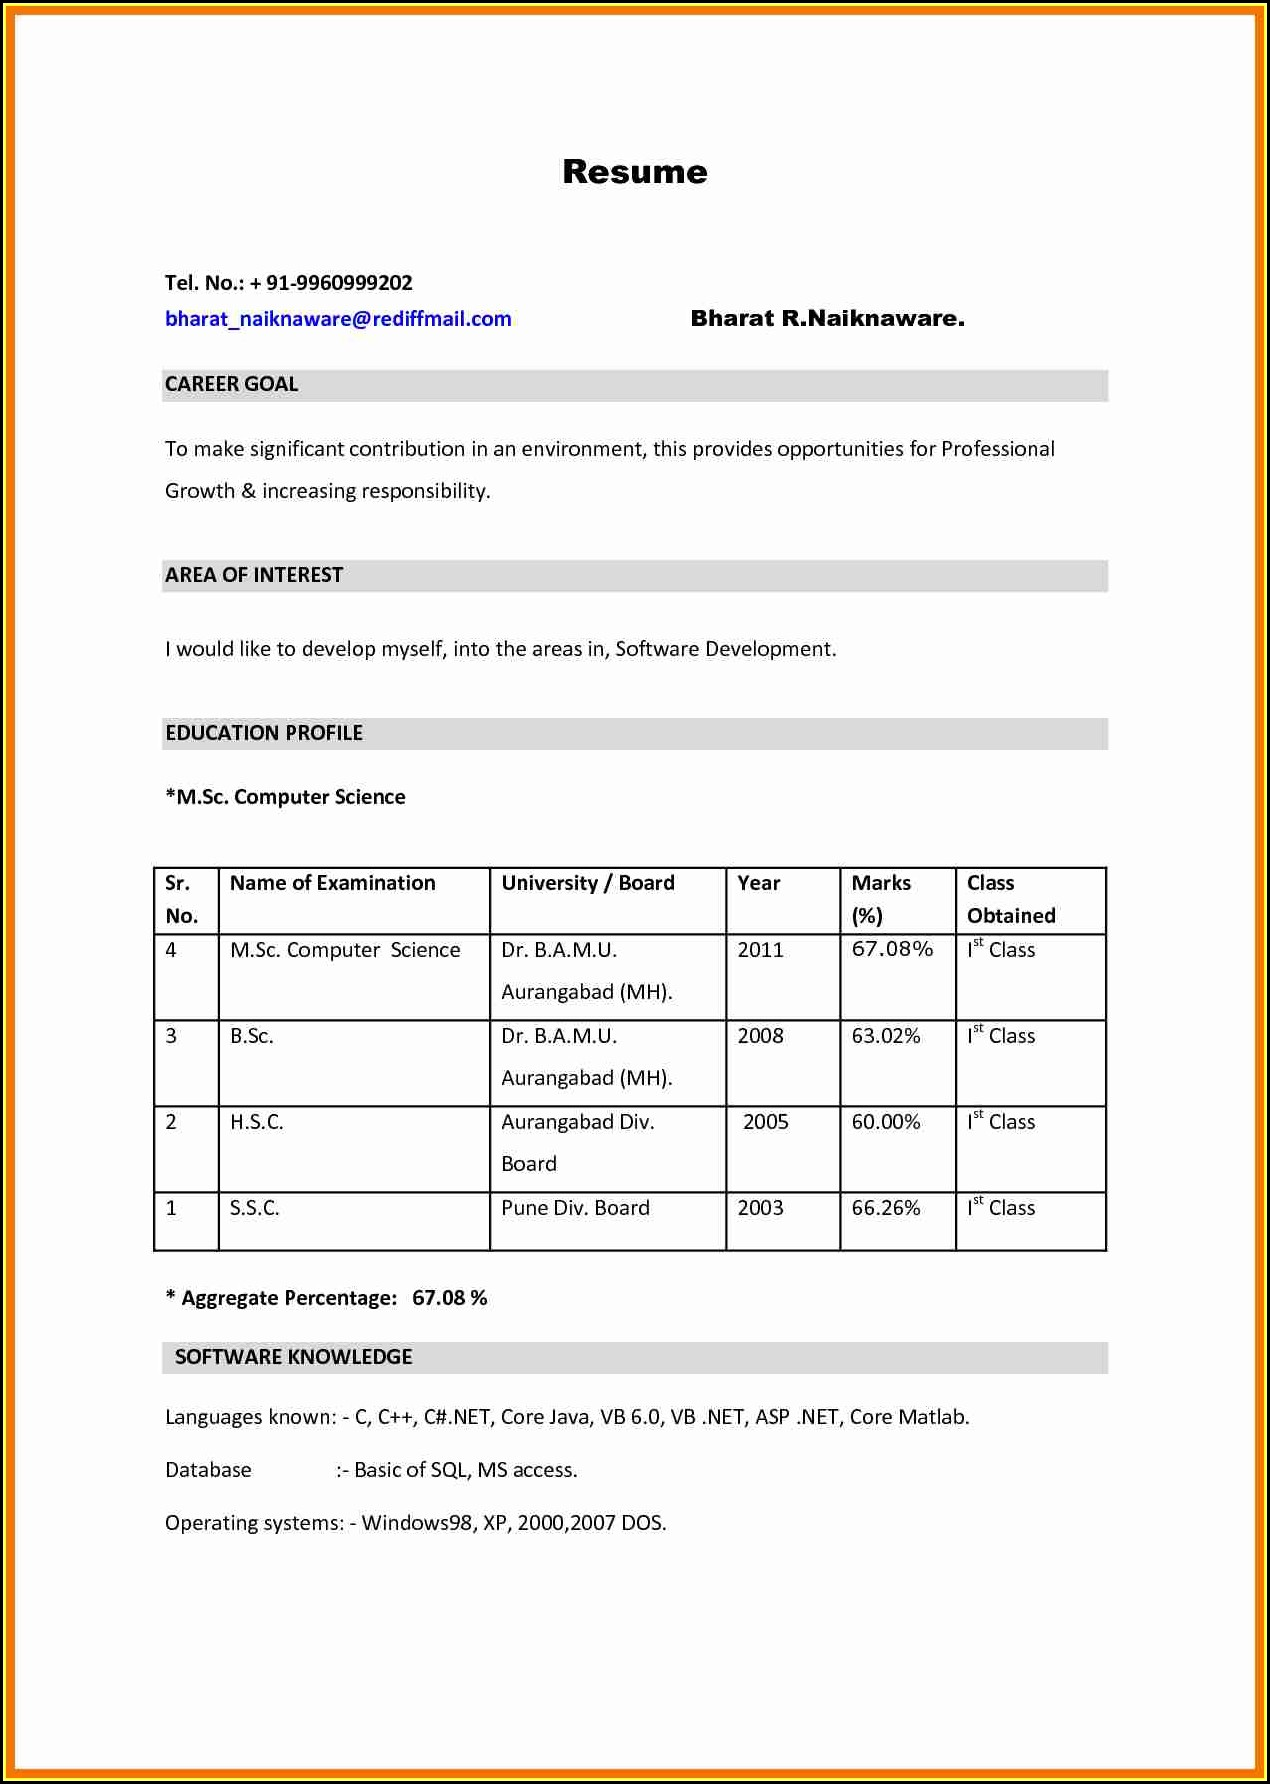 bsc resume format pdf best examples for students nursing experienced emergency management Resume Resume Format For Bsc Students